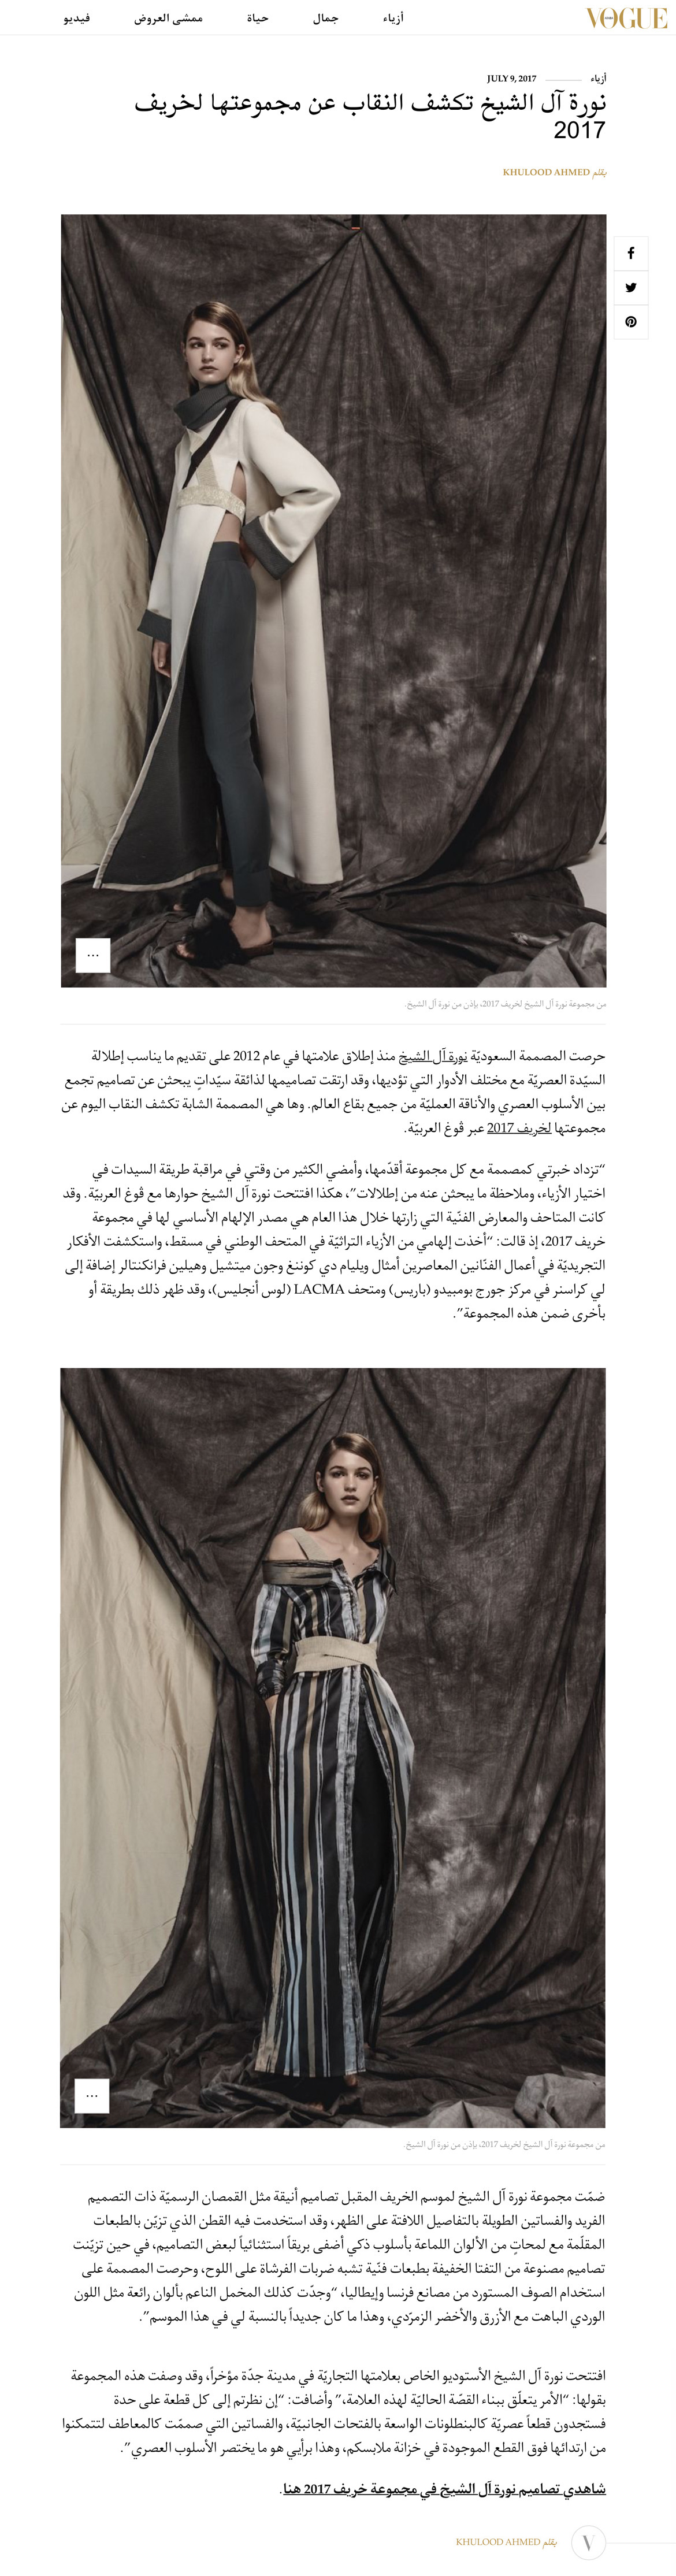 2017-20september-20vogue-20arabia-20arb